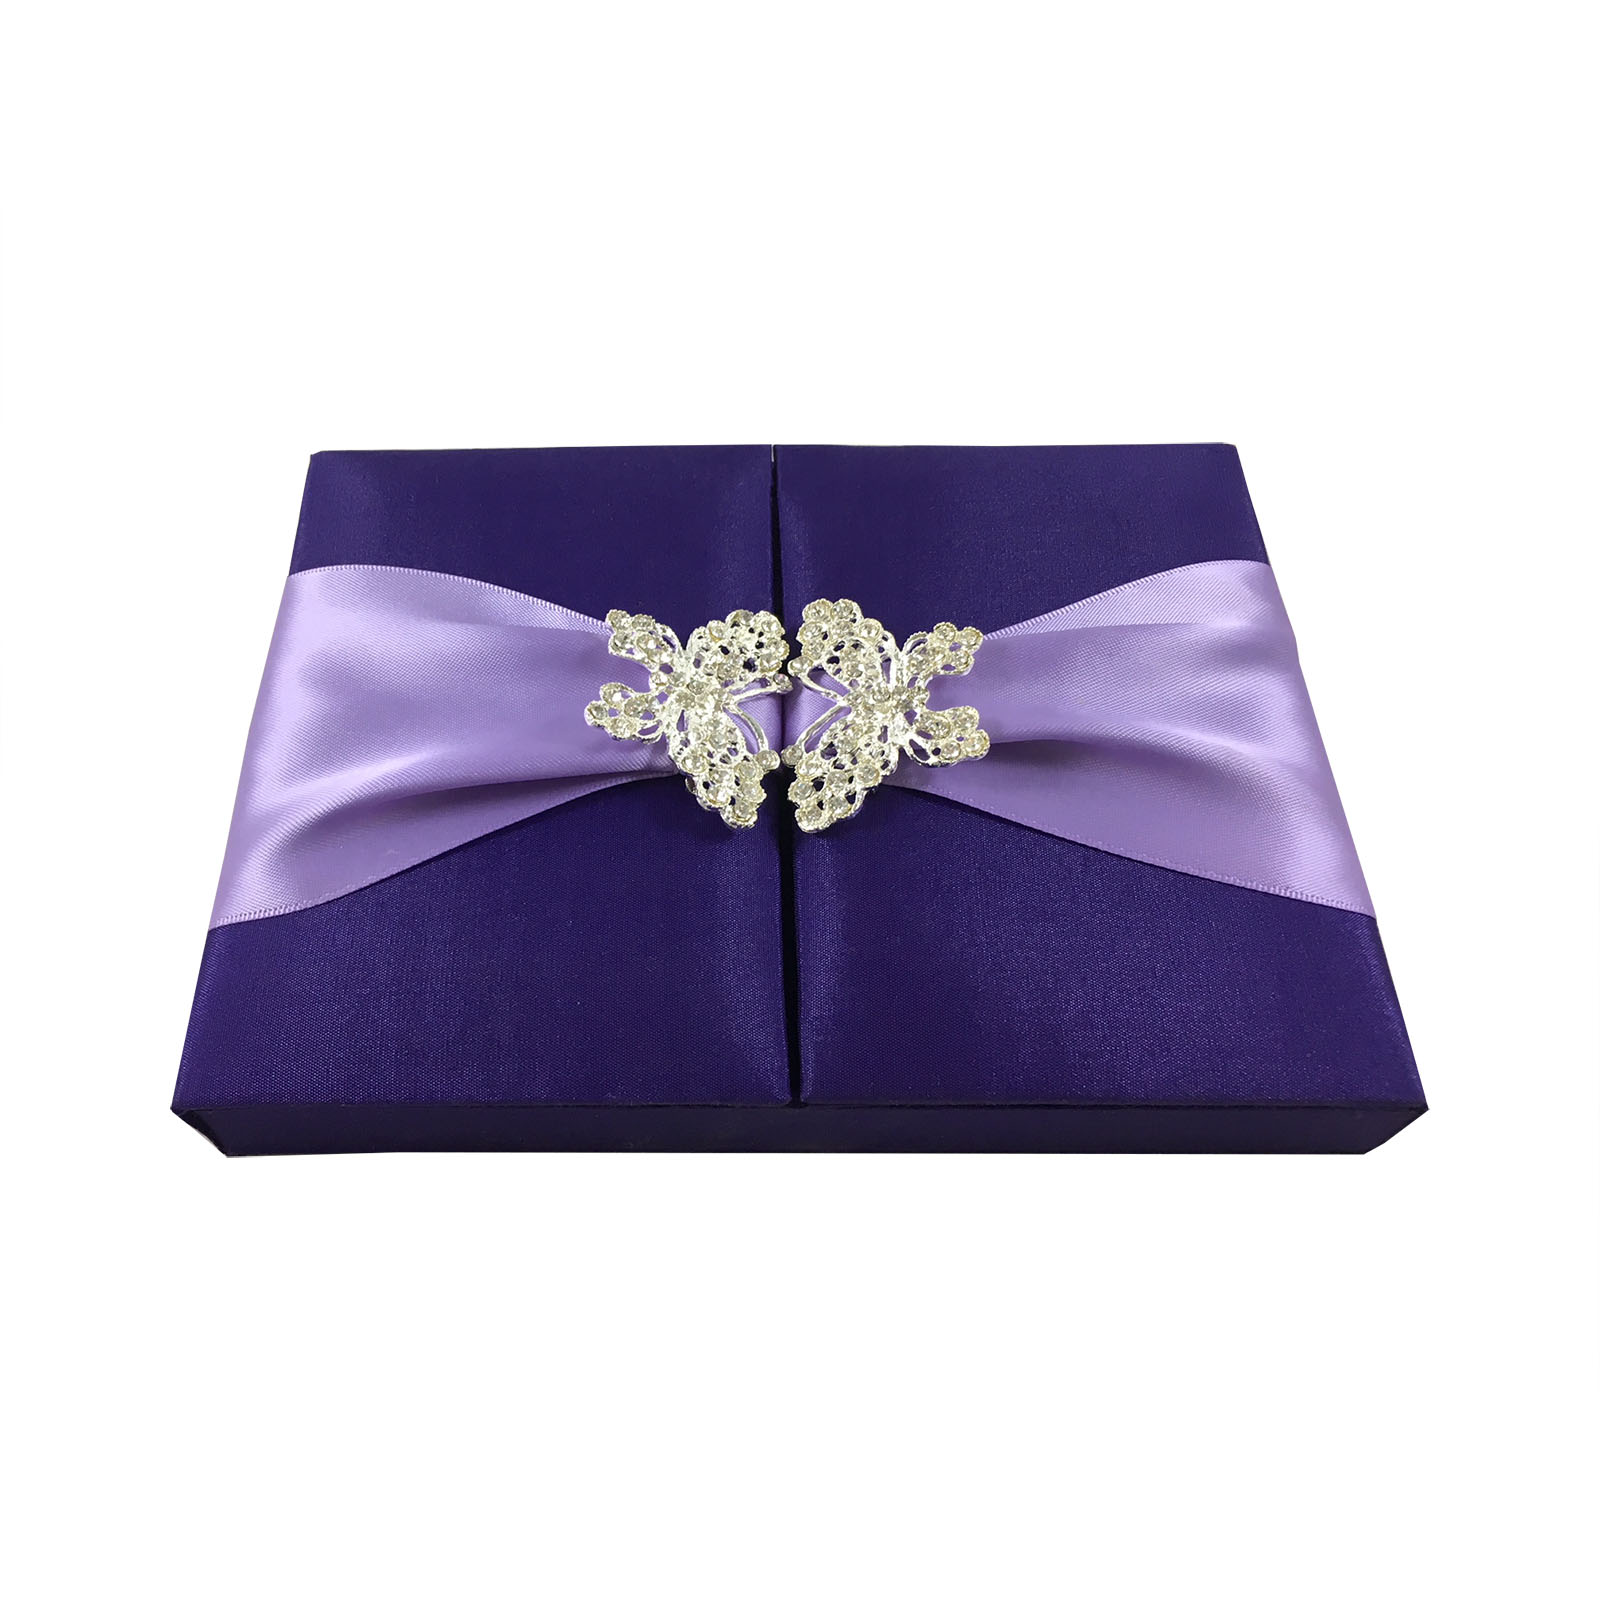 booking livemaster handmade your brooches on online item violet leather with brooch shop buy